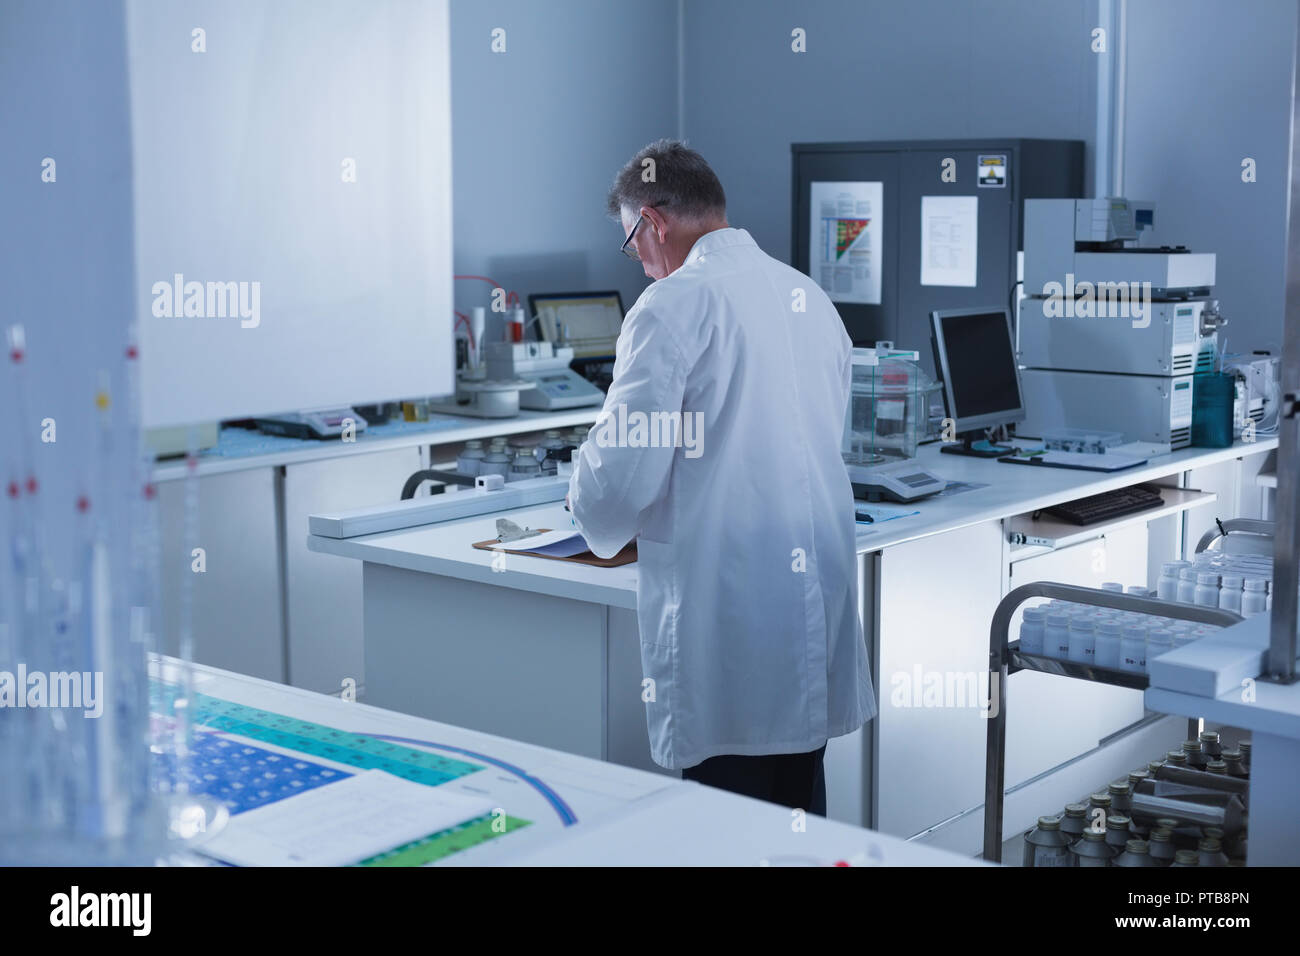 Male scientist experimenting in laboratory - Stock Image